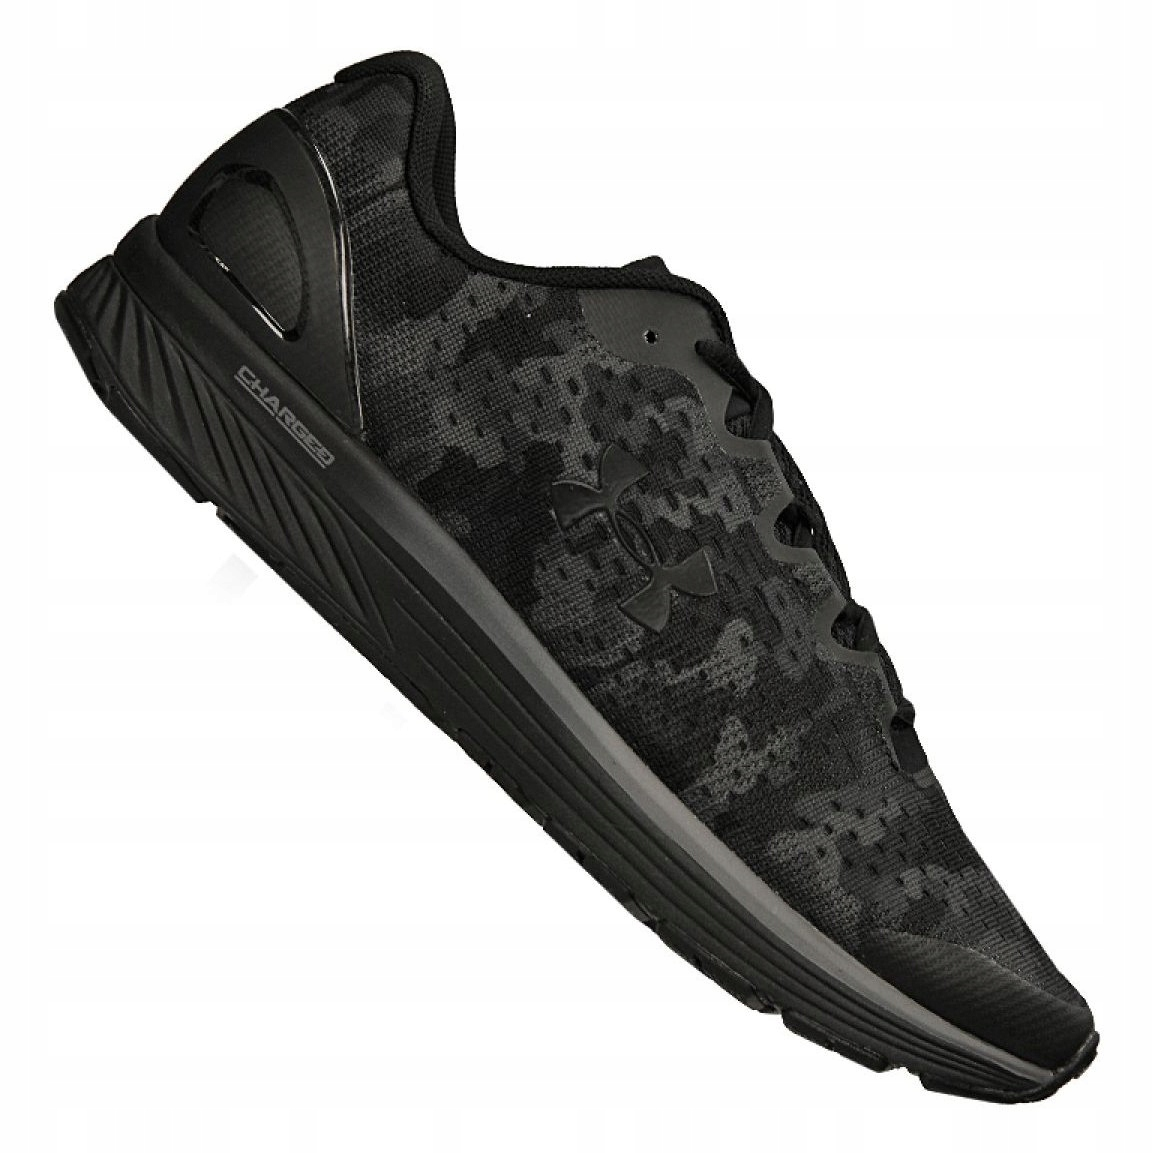 Buty biegowe Under Armour Charged Bandit 4 r.42